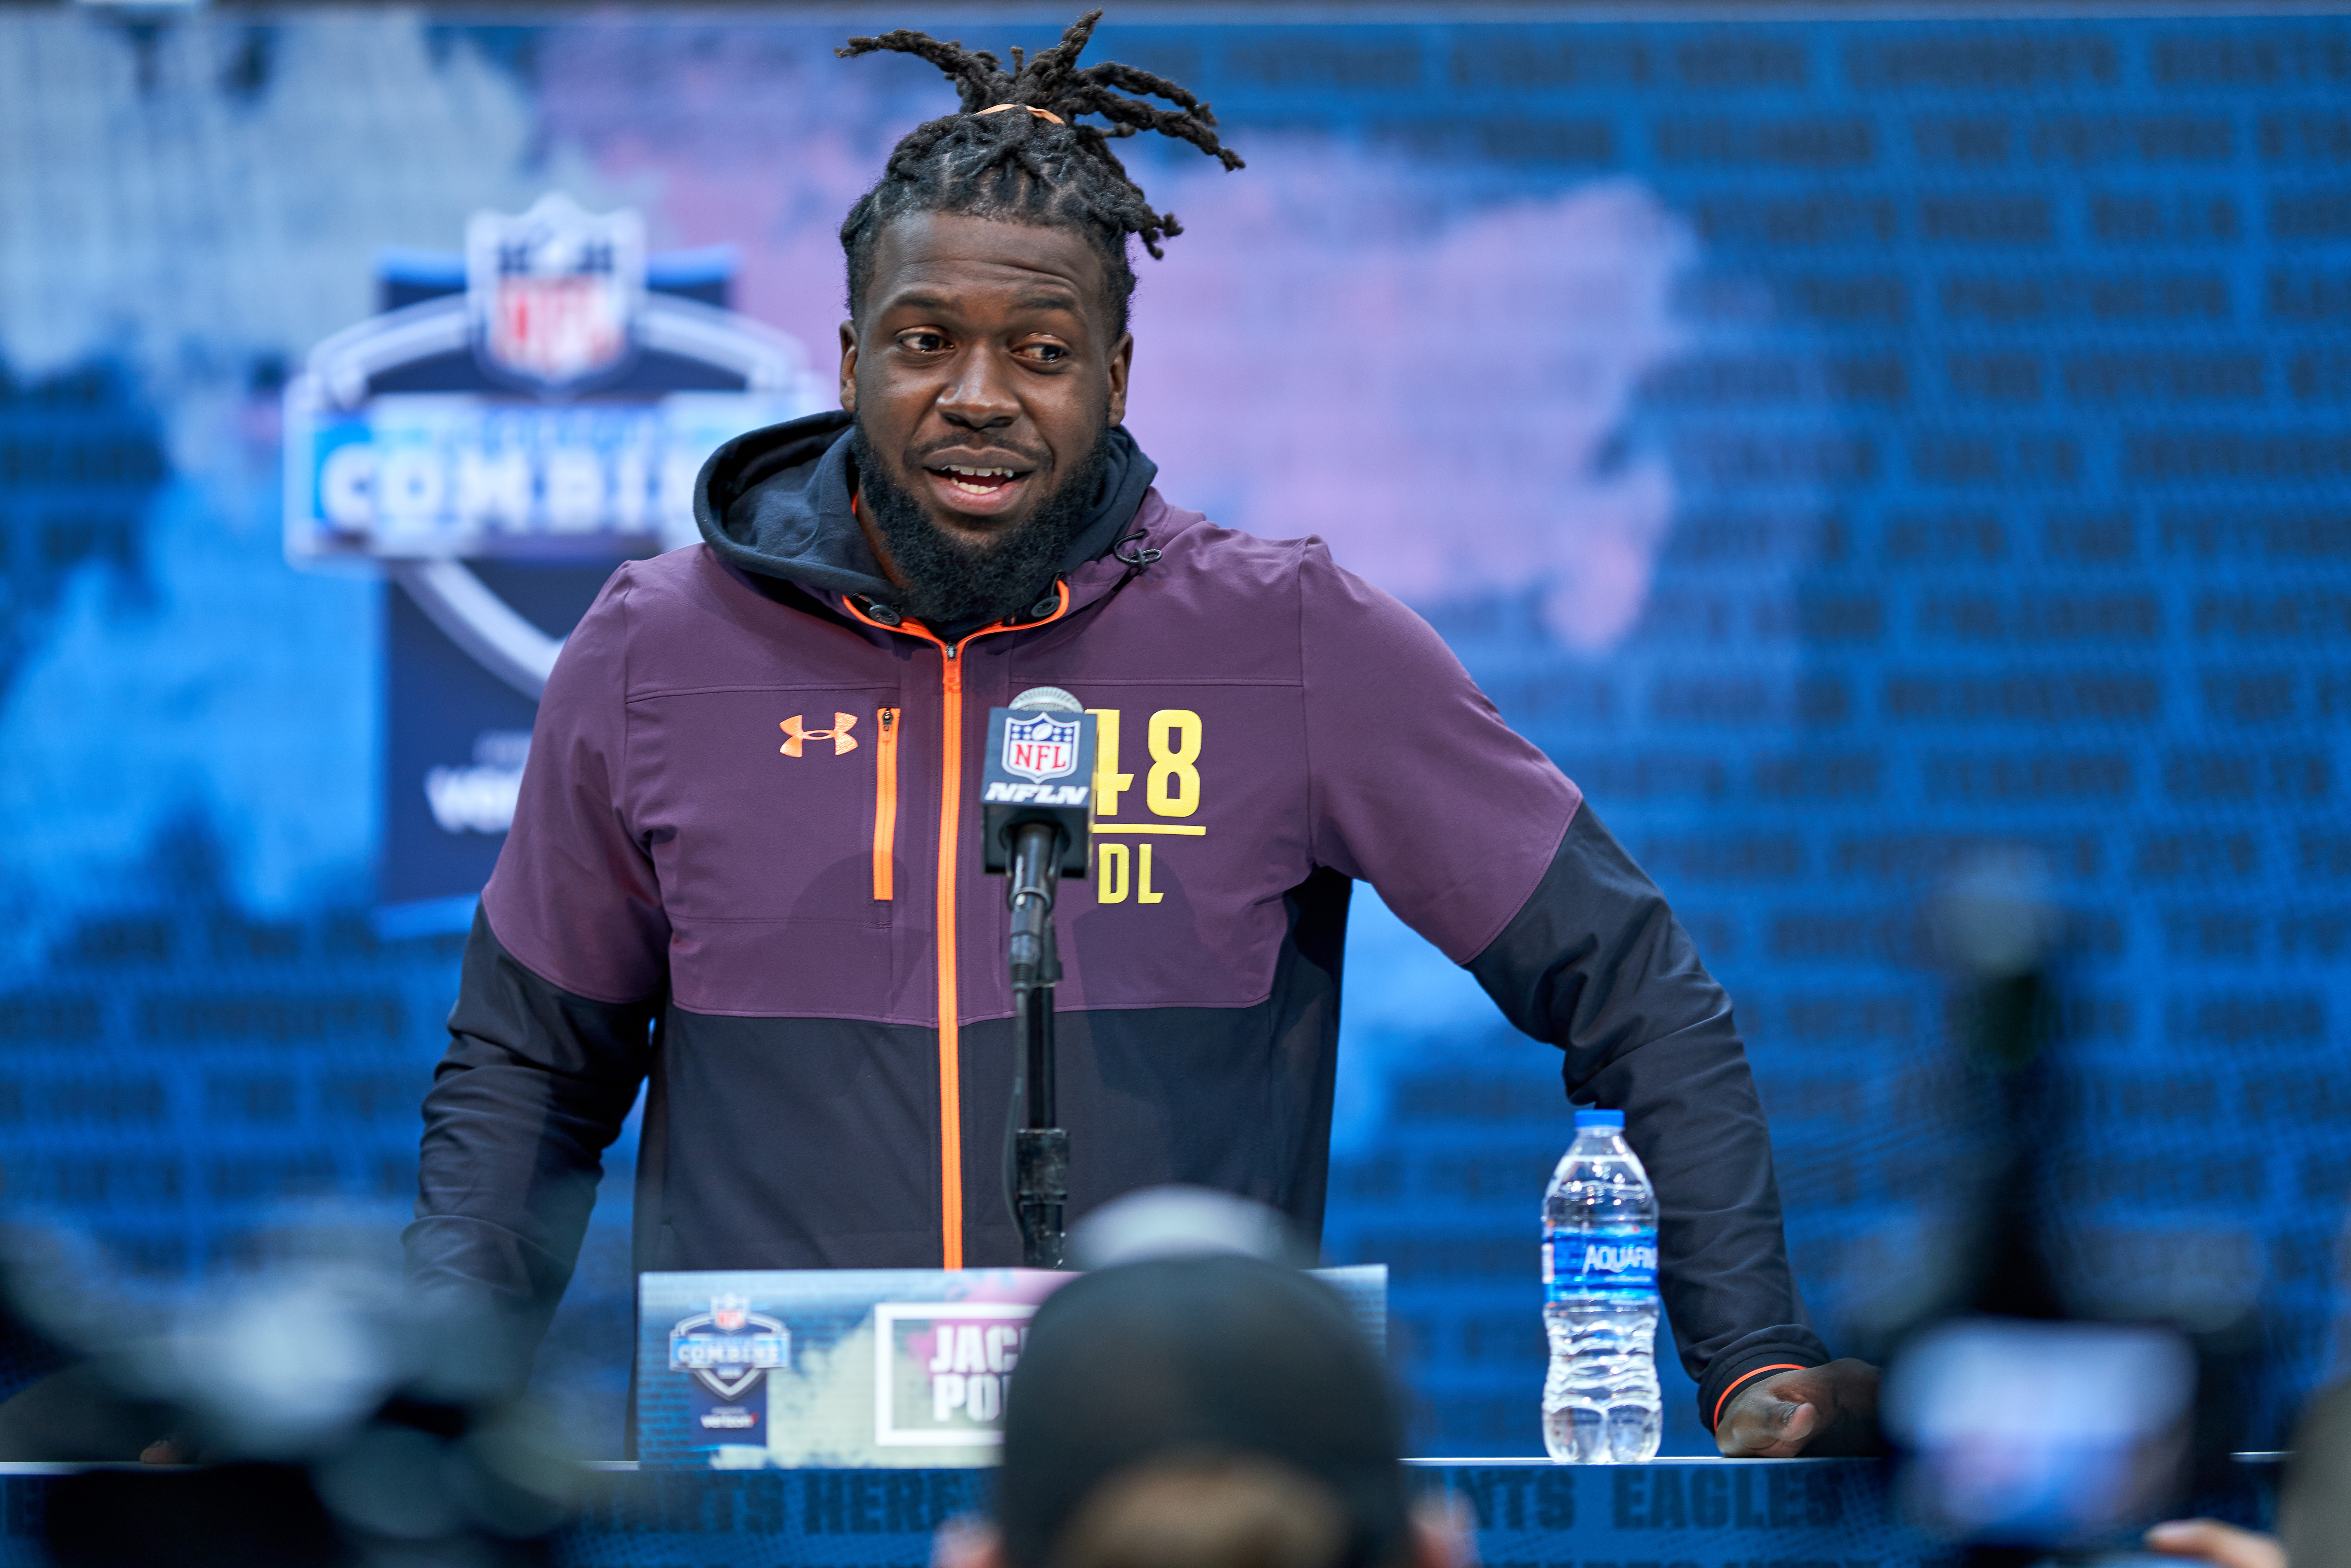 NFL Draft Prospect Says Team Asked Whether He Has Both Testicles